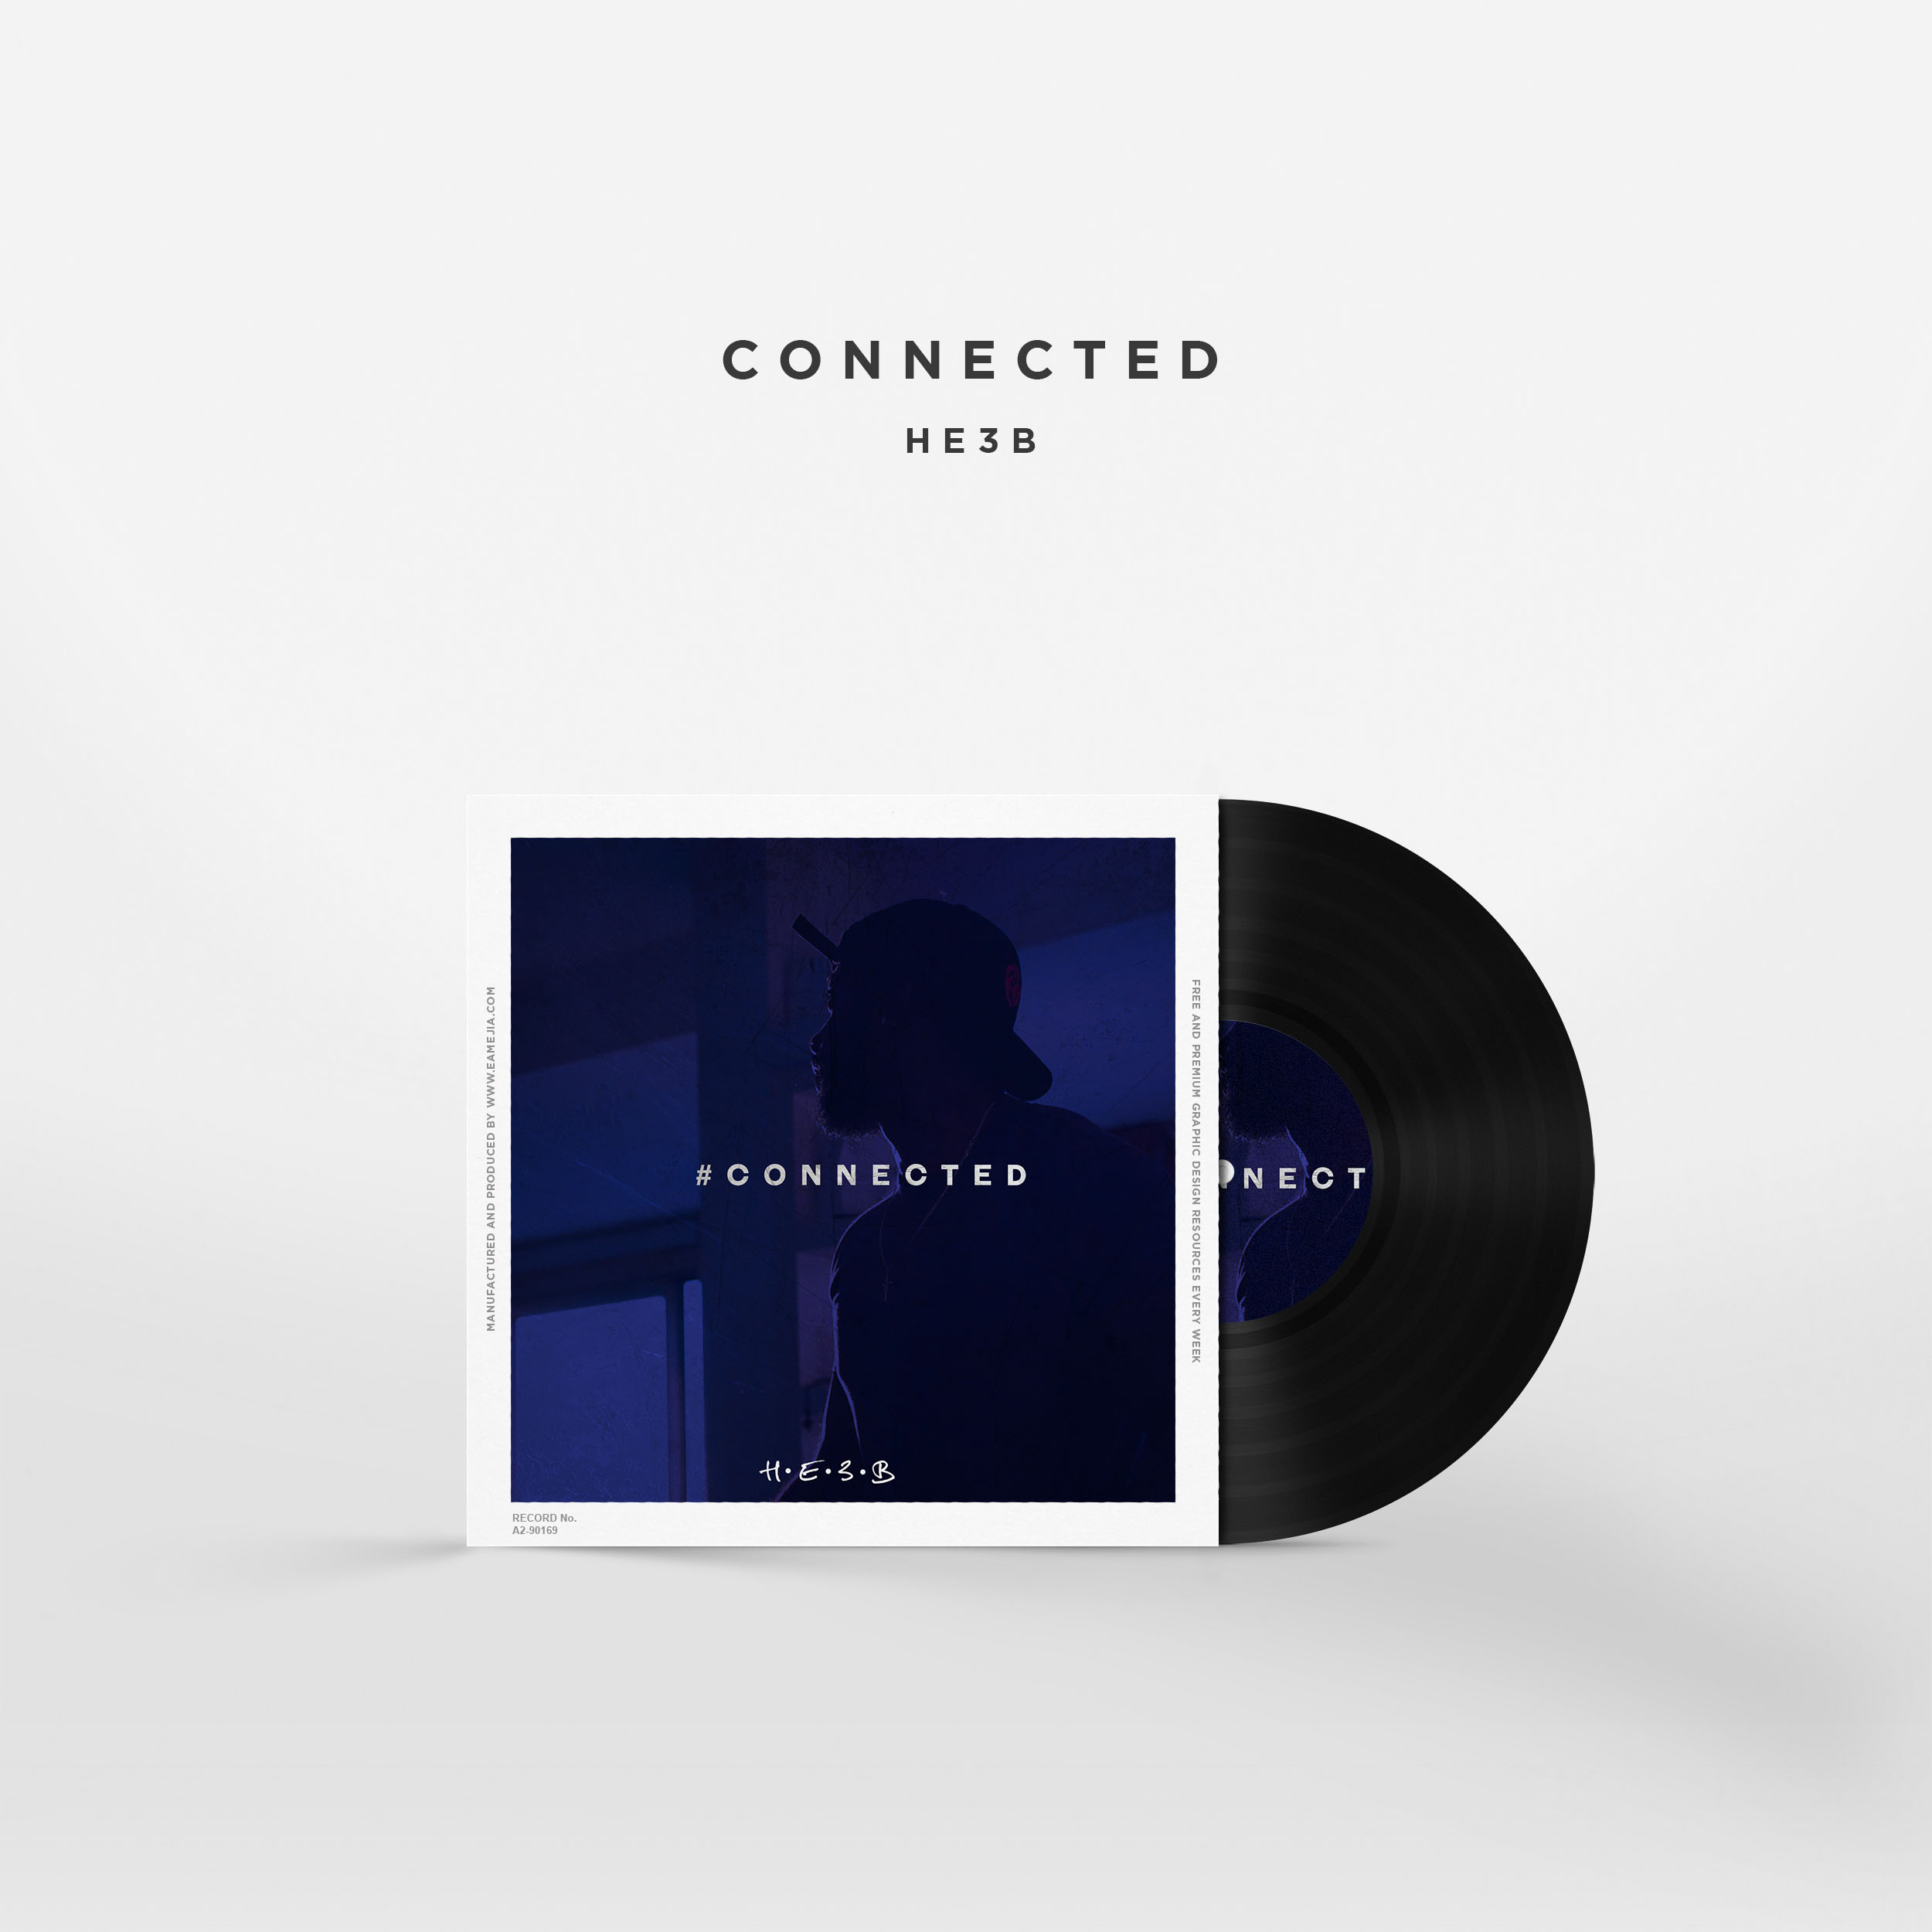 https://www.apricotcreative.co.uk/project/connected/